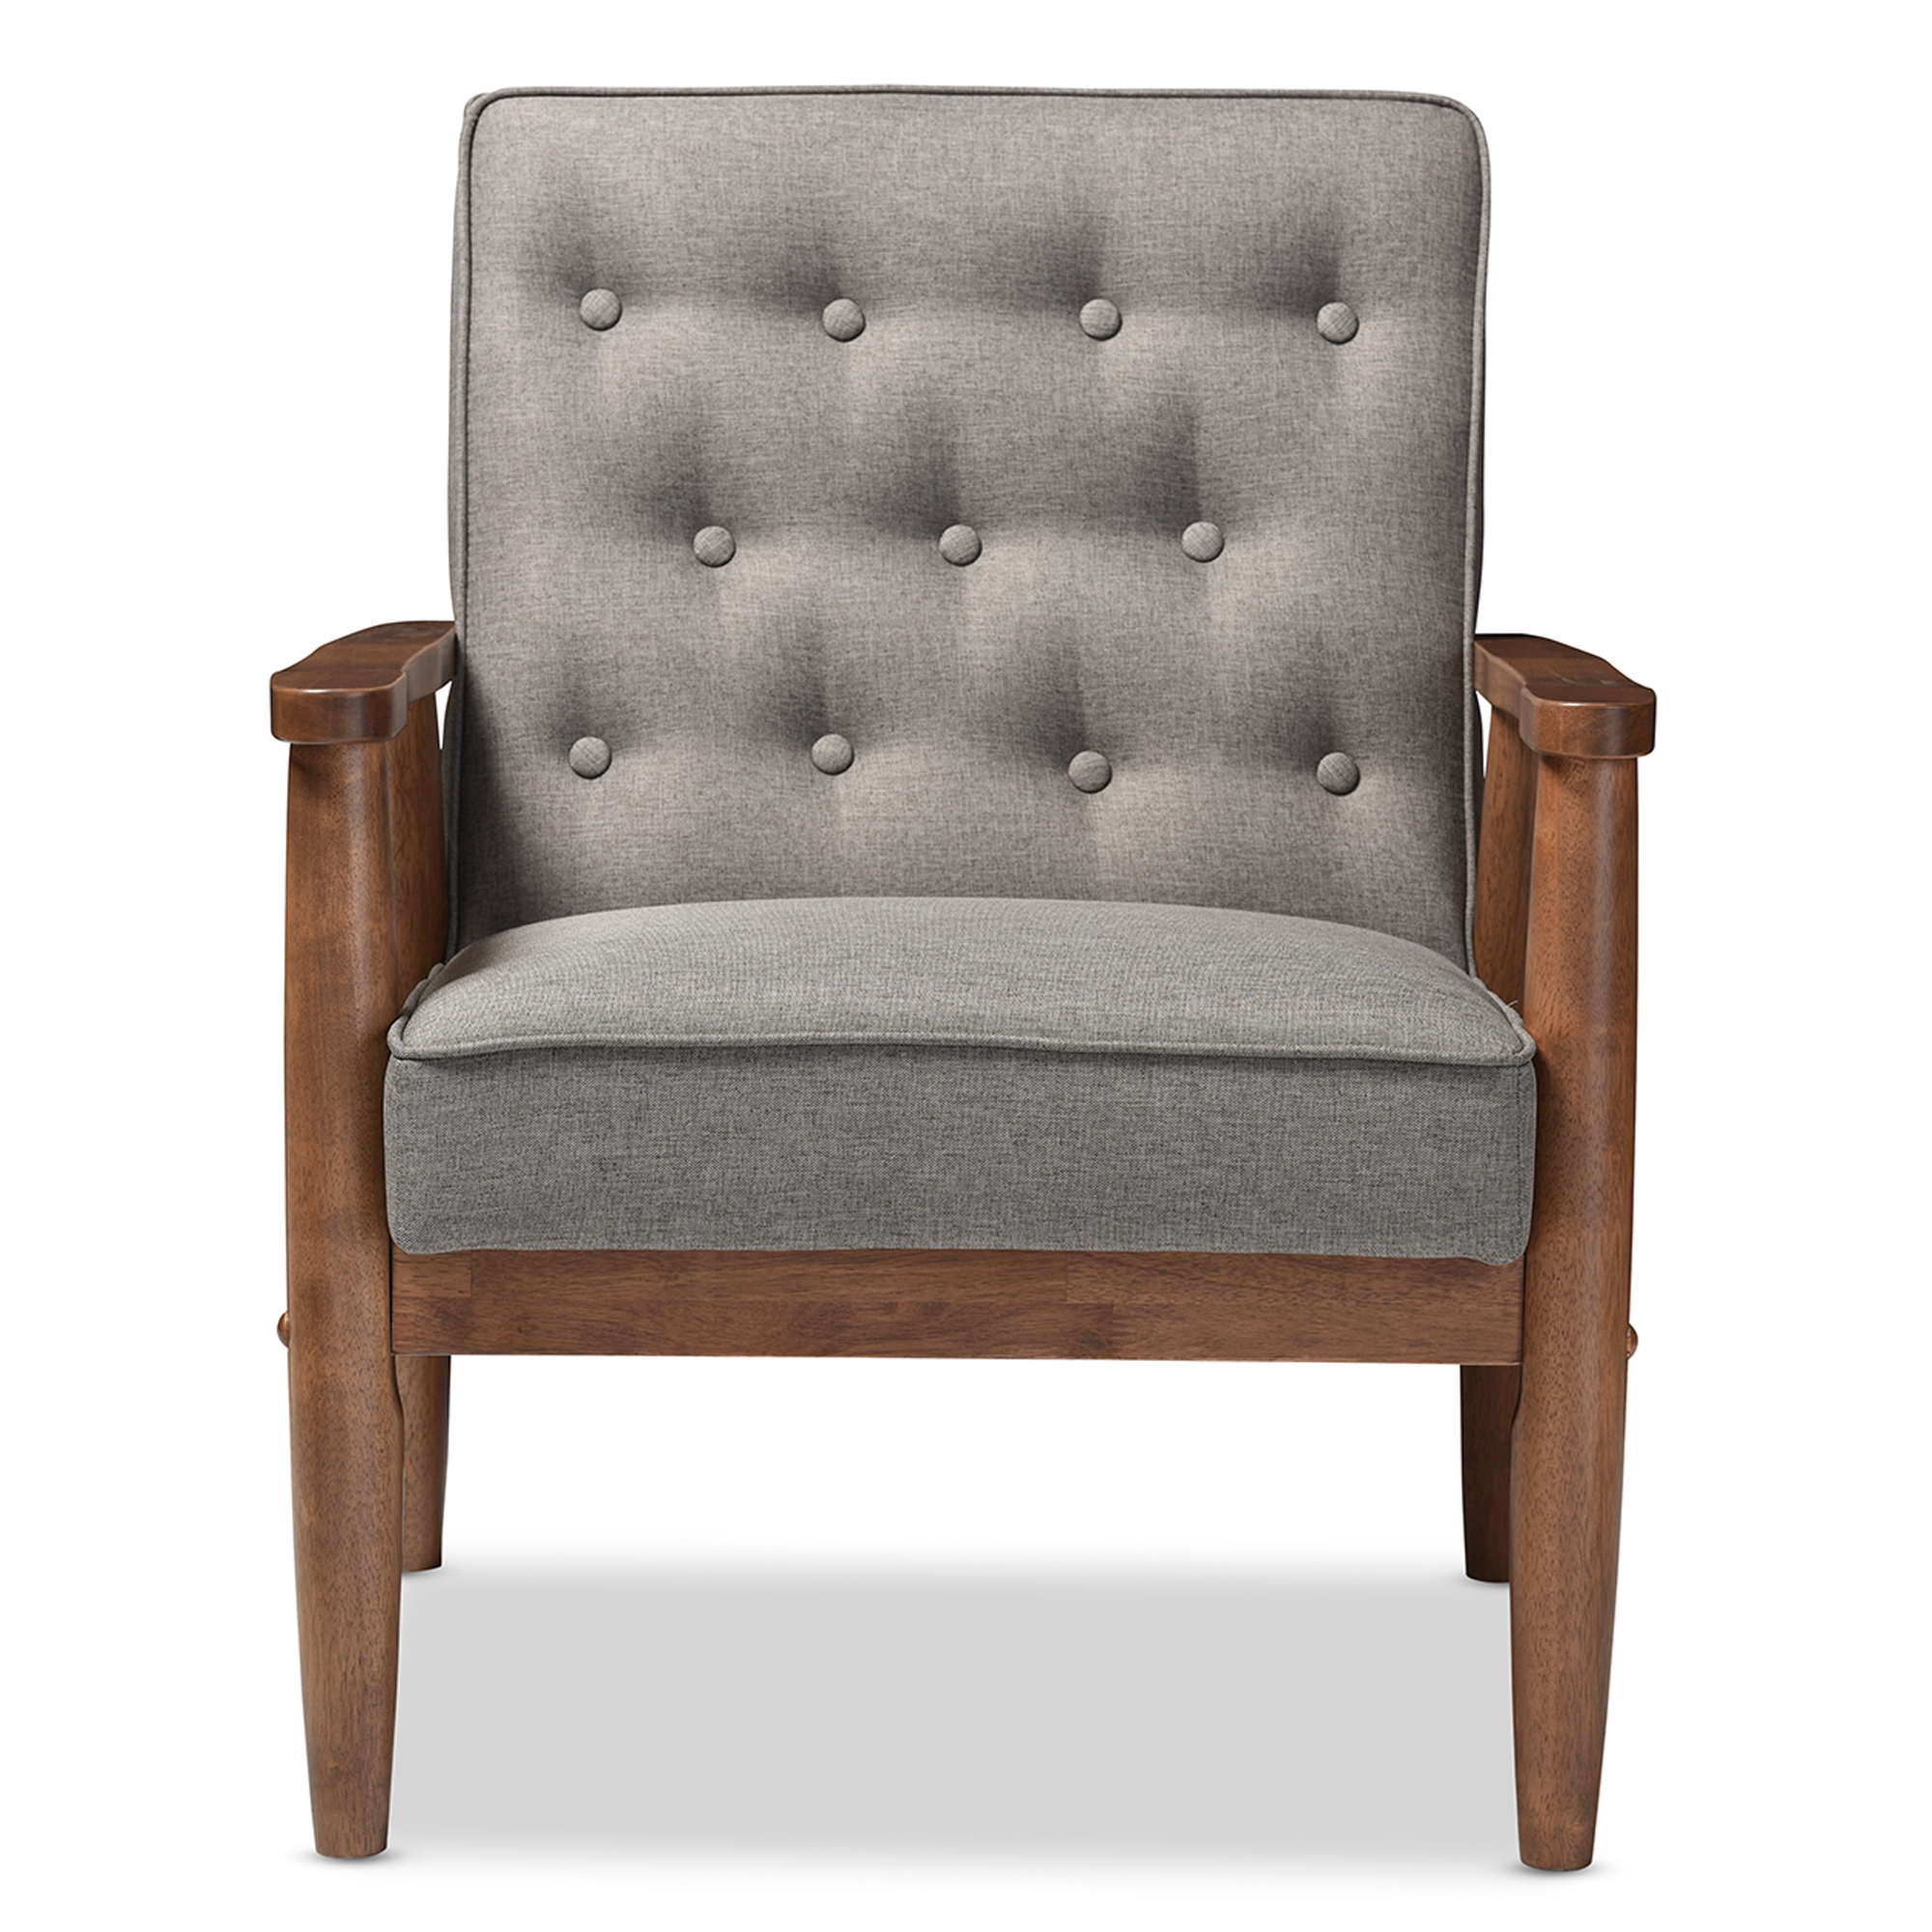 Baxton Studio Sorrento Mid-century Retro Modern Grey Fabric Upholstered Wooden Lounge Chair - IEBBT8013 ...  sc 1 st  Interior Express : wood lounge chairs - Cheerinfomania.Com